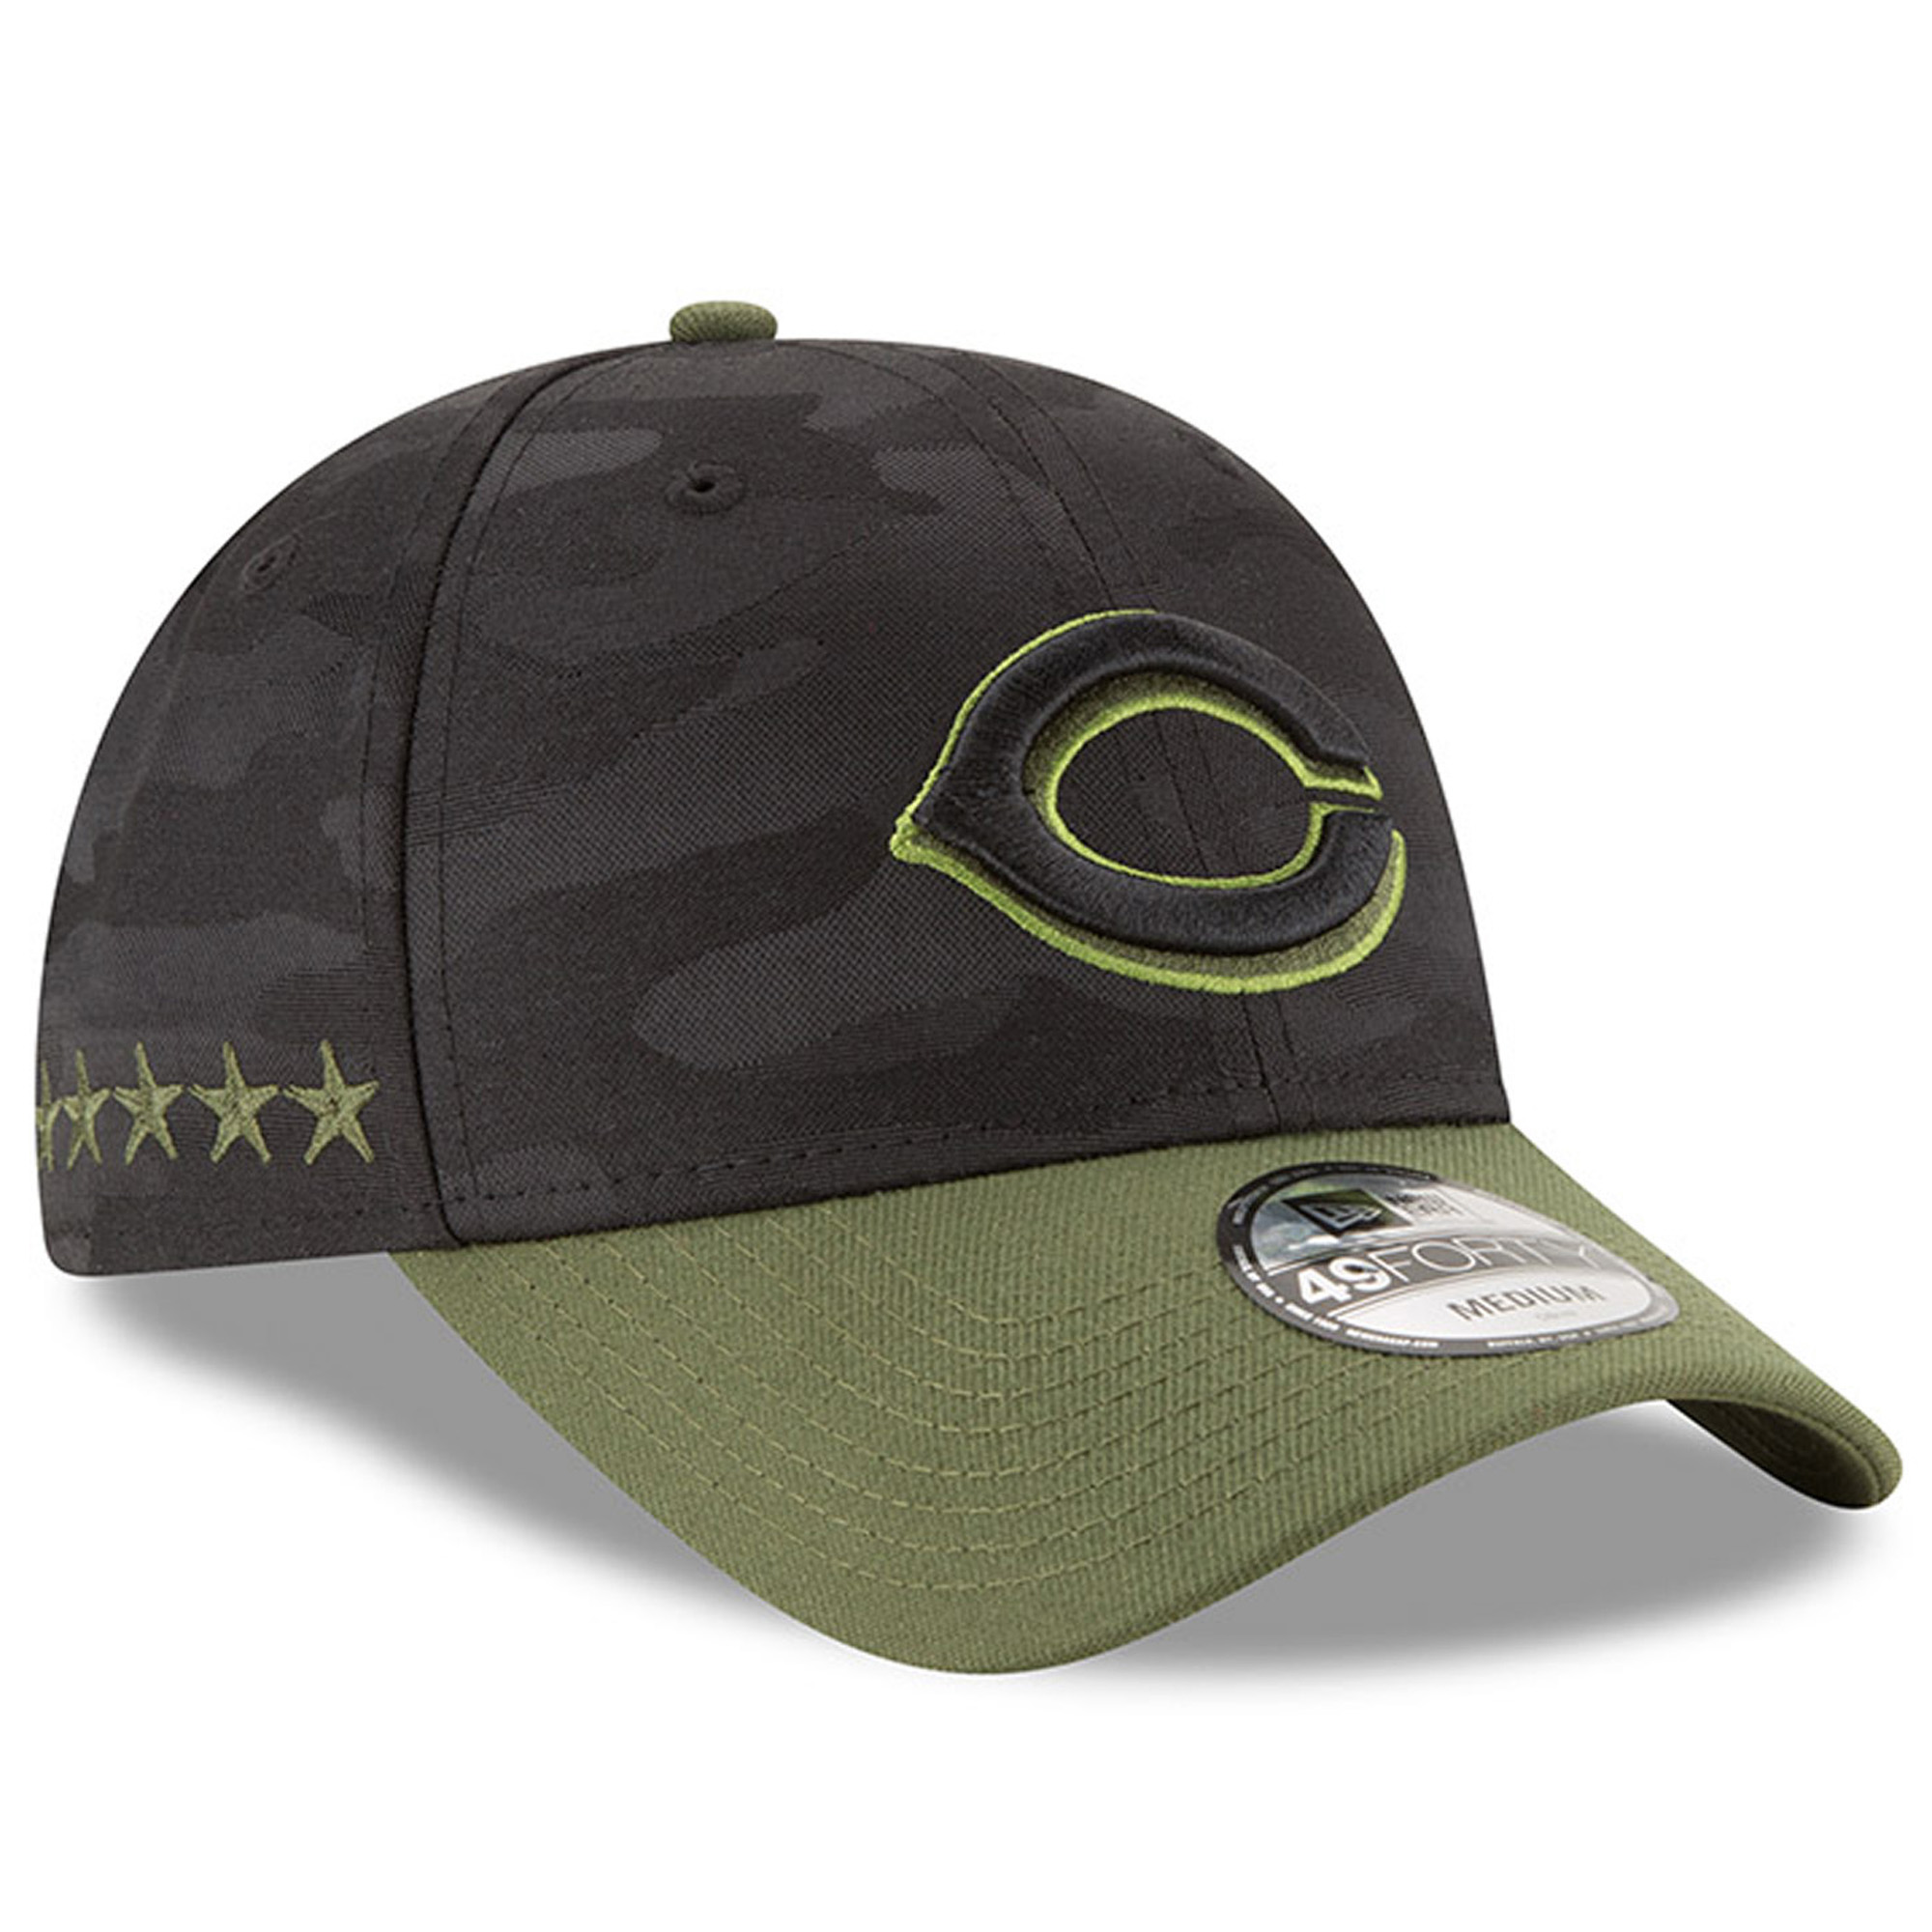 Cincinnati Reds New Era 2018 Memorial Day 49FORTY Fitted Hat - Black